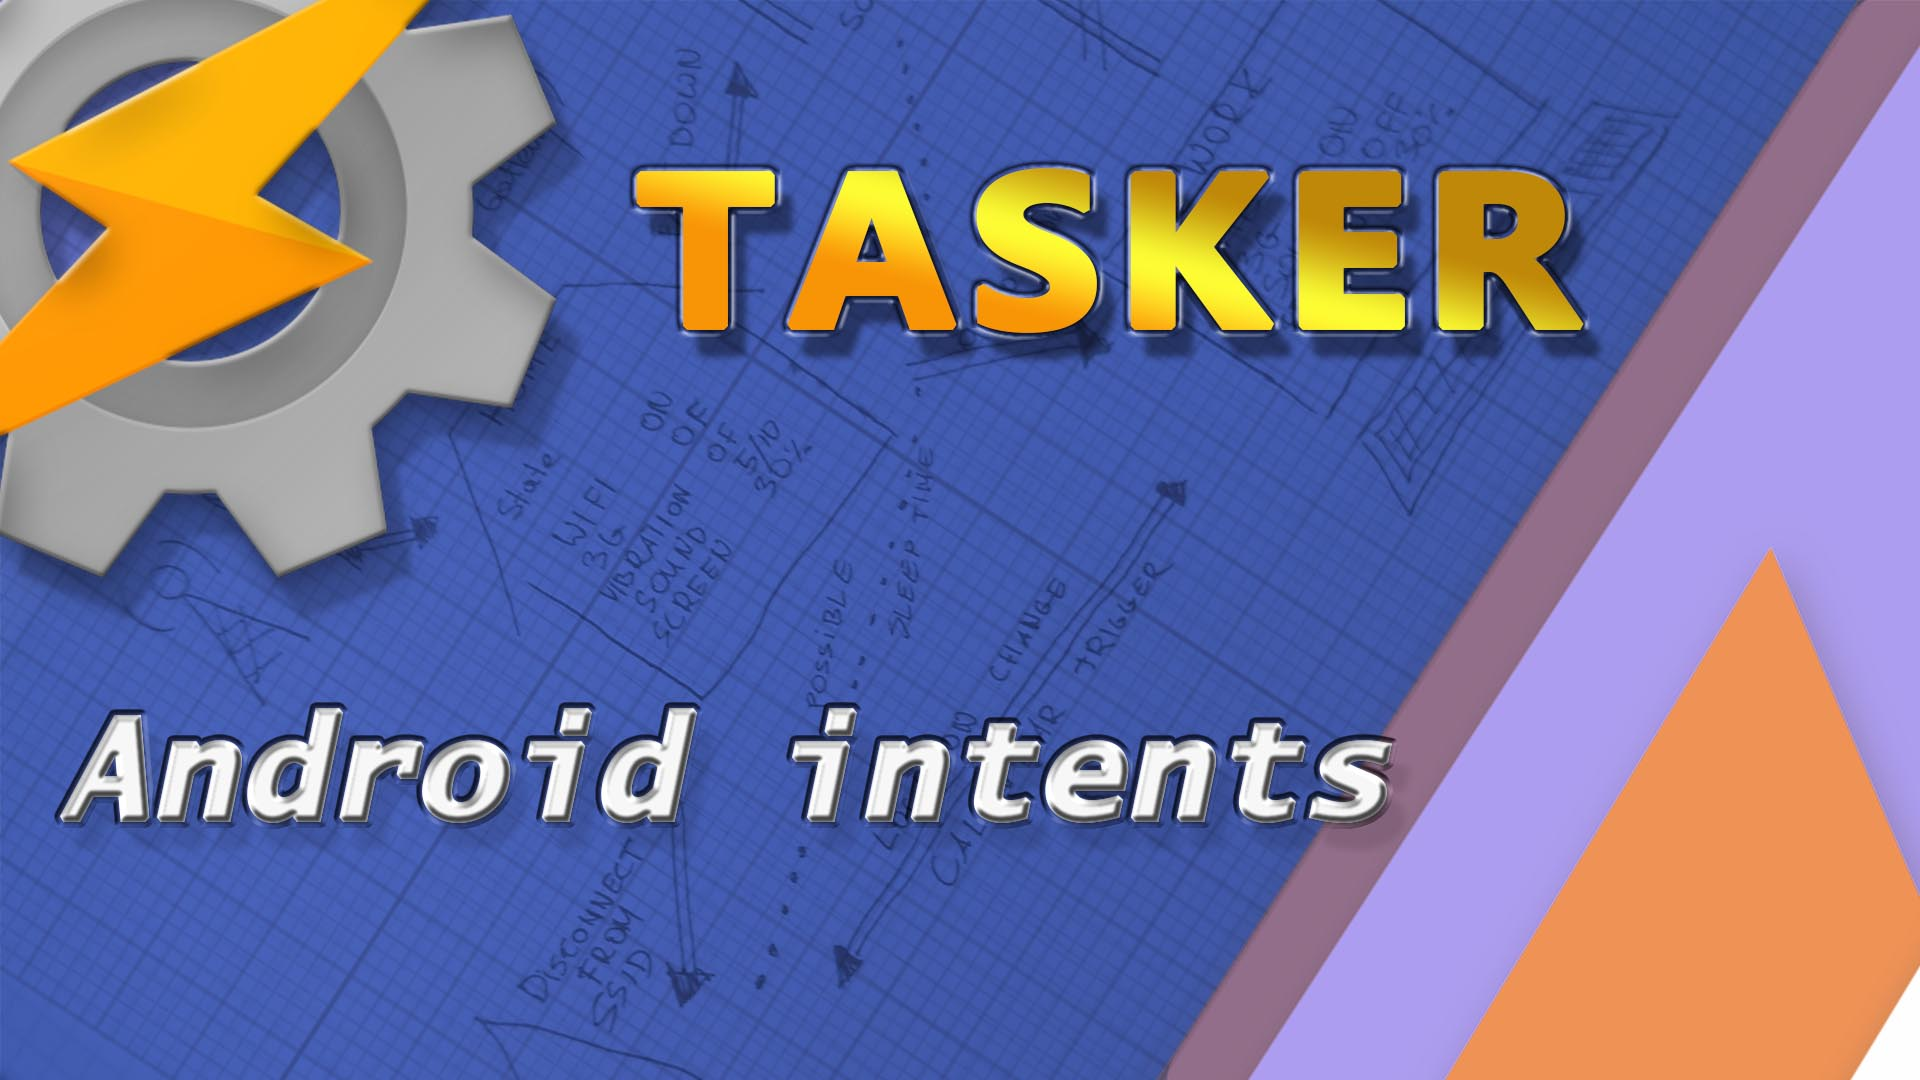 Android intents in Tasker - Not Enough TECH